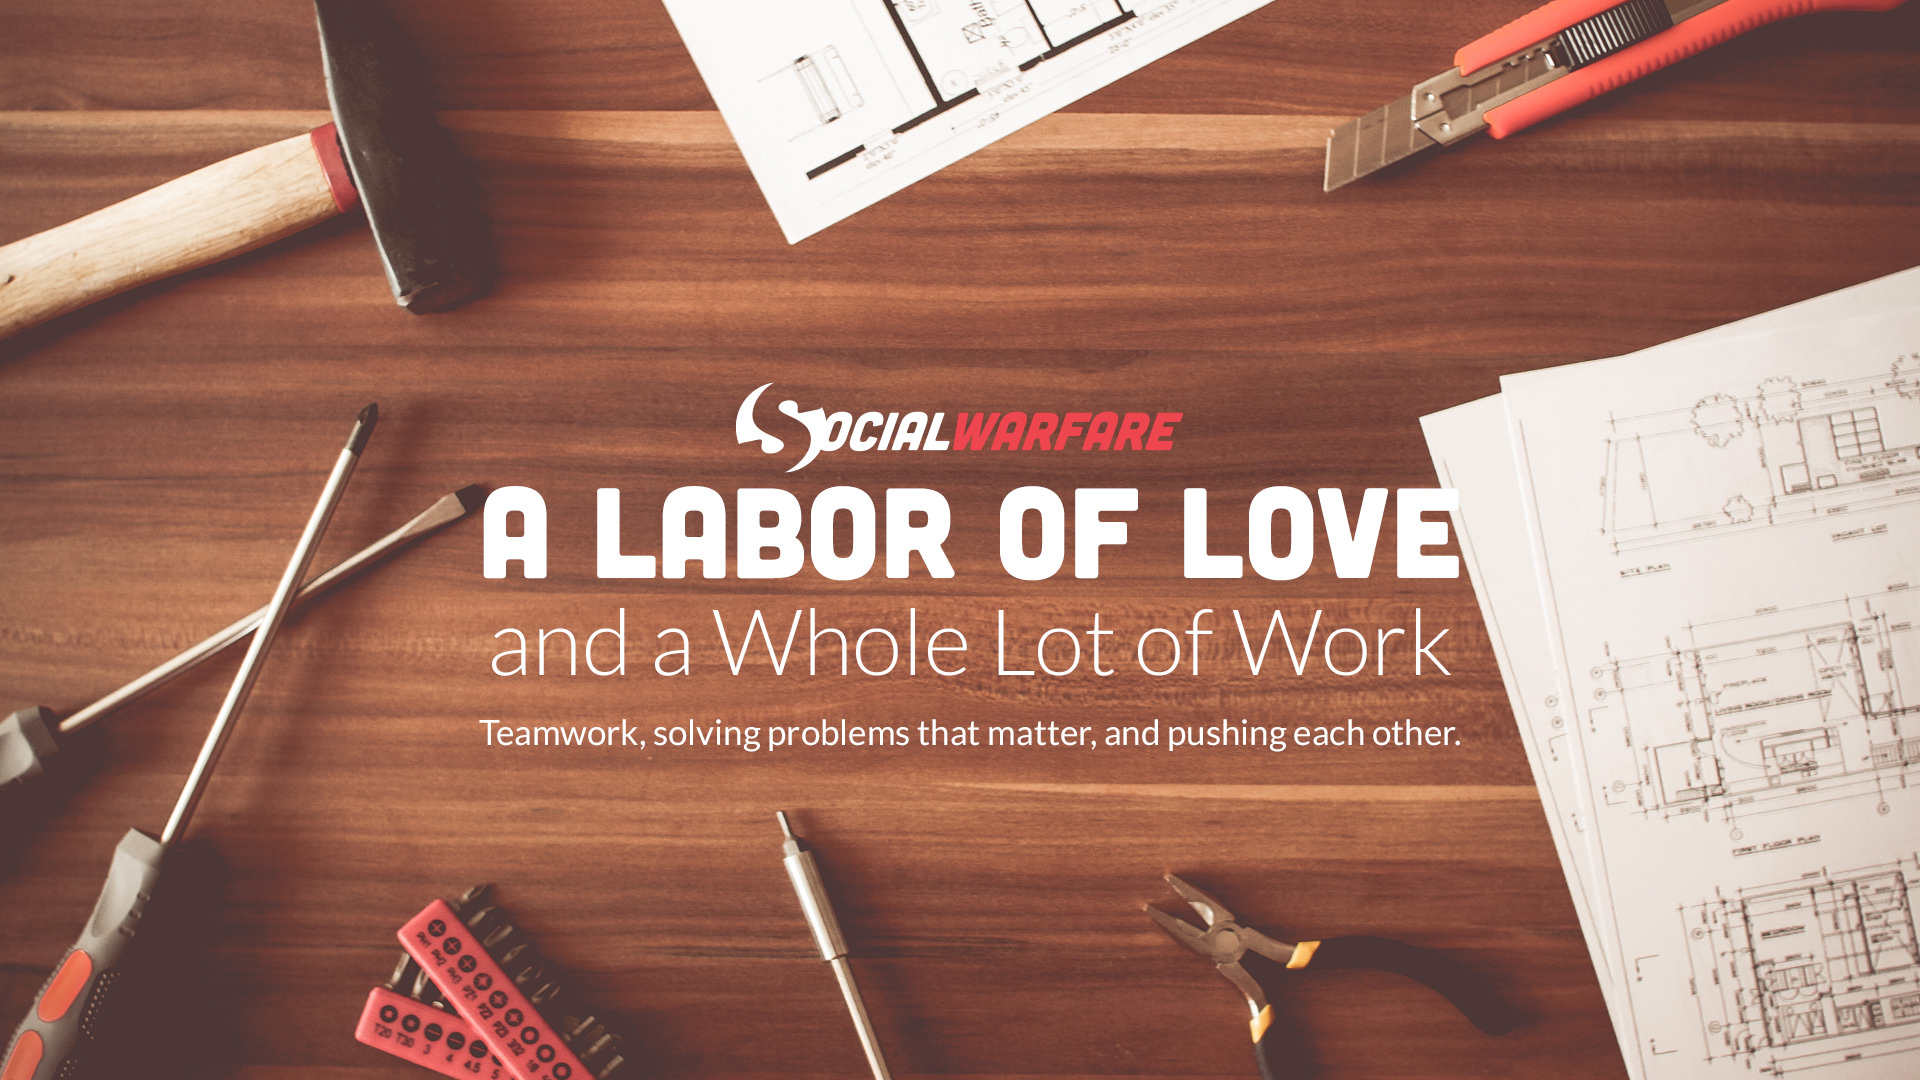 social warfare labor of love